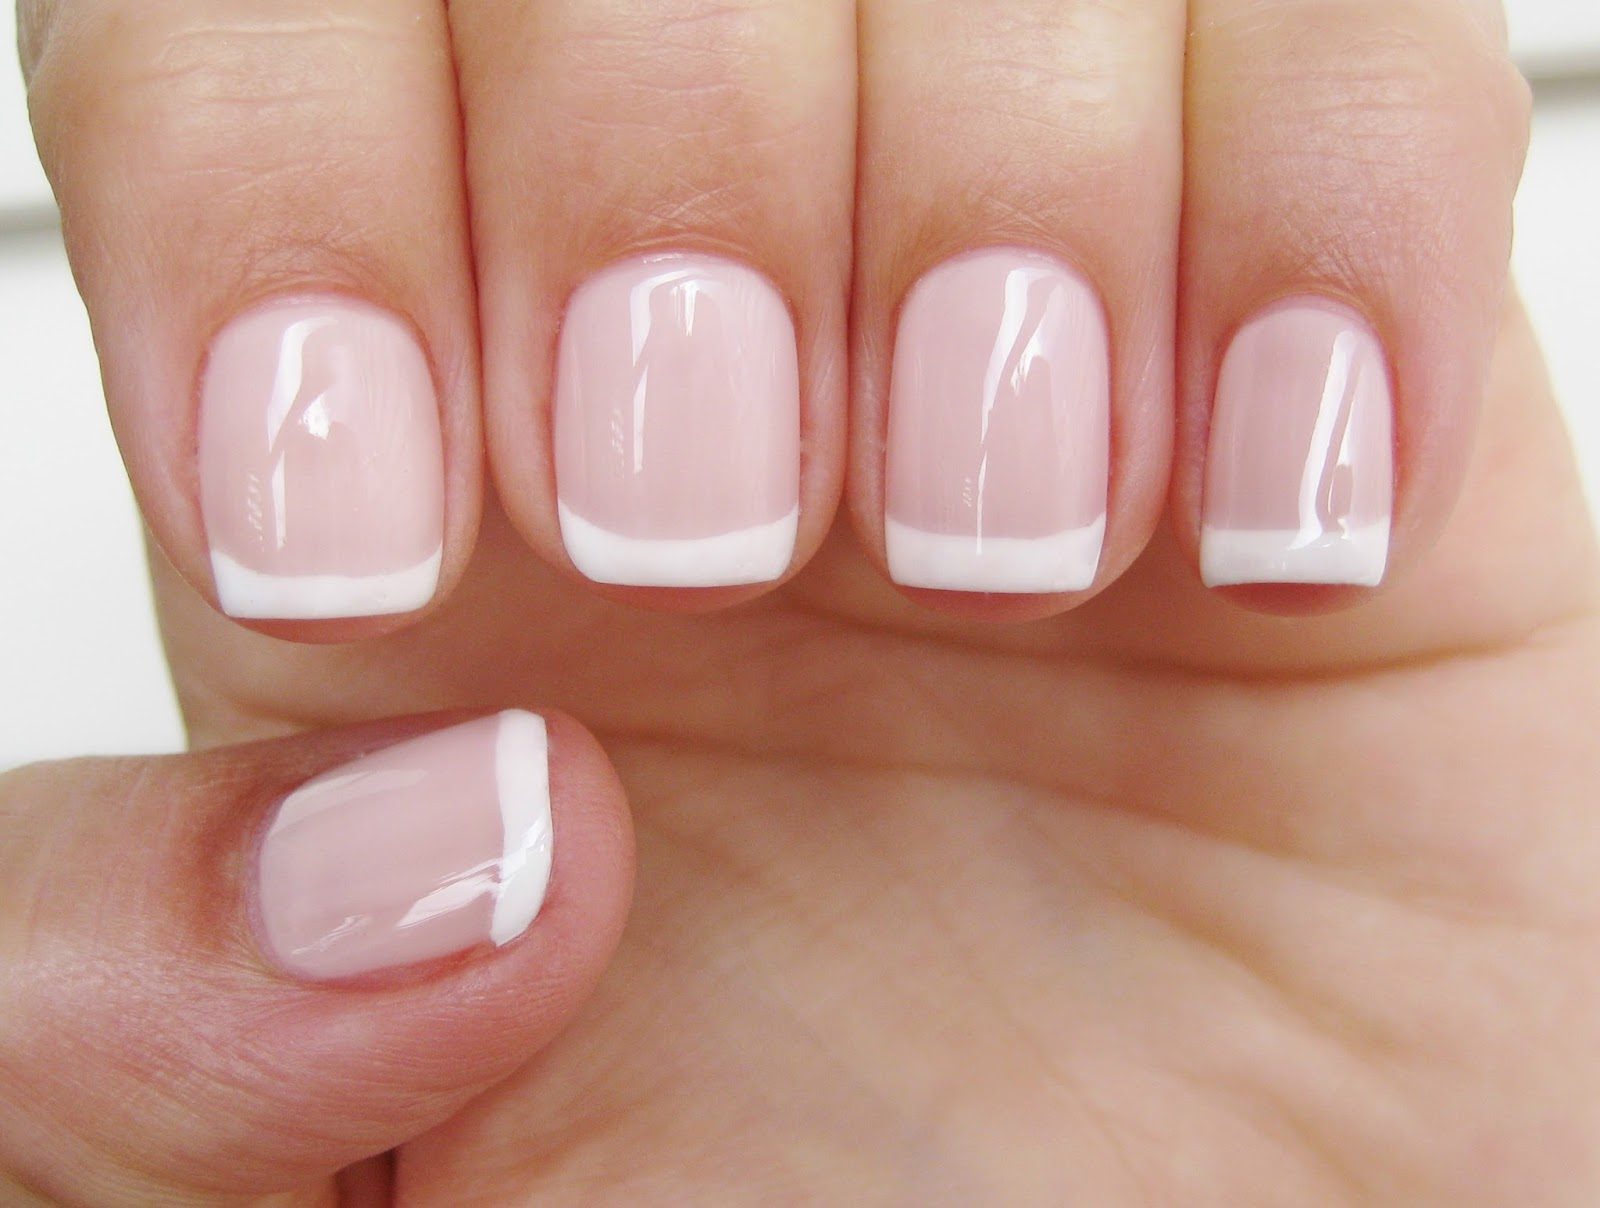 Dahlia Nails: Happily Ever After with Mavala